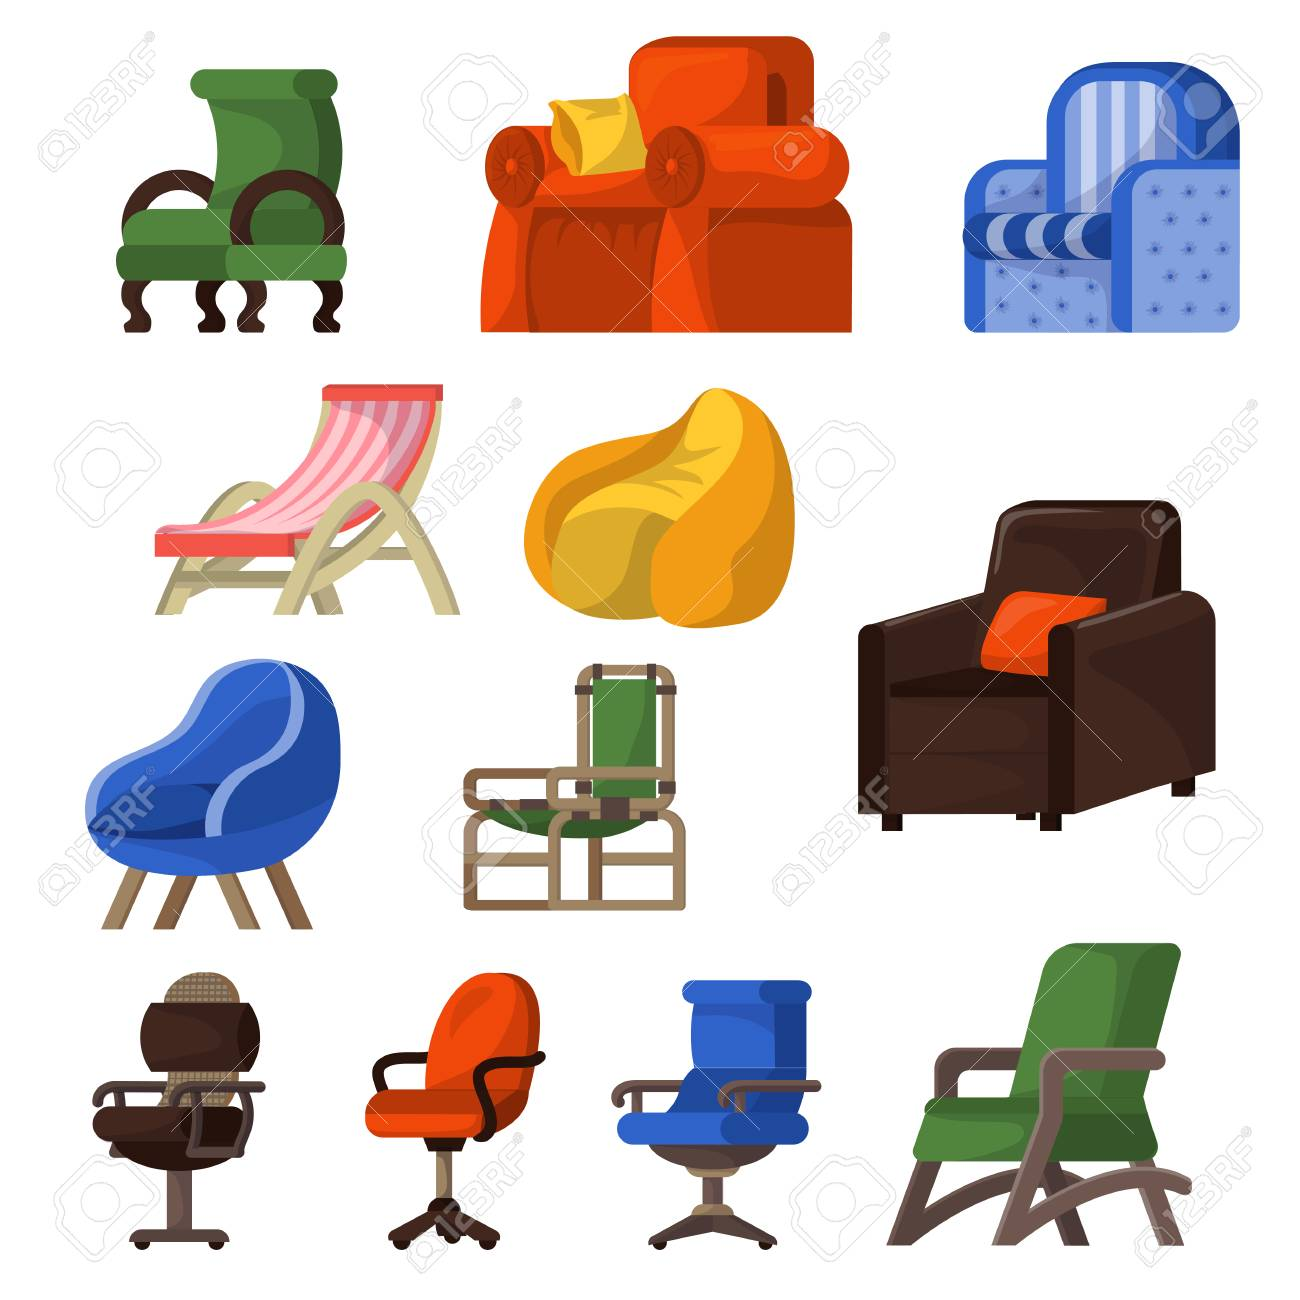 Chair vector comfortable furniture armchair and seat design in furnished apartment interior illustration set of business office-chair or easy-chair isolated on white background. - 111746292